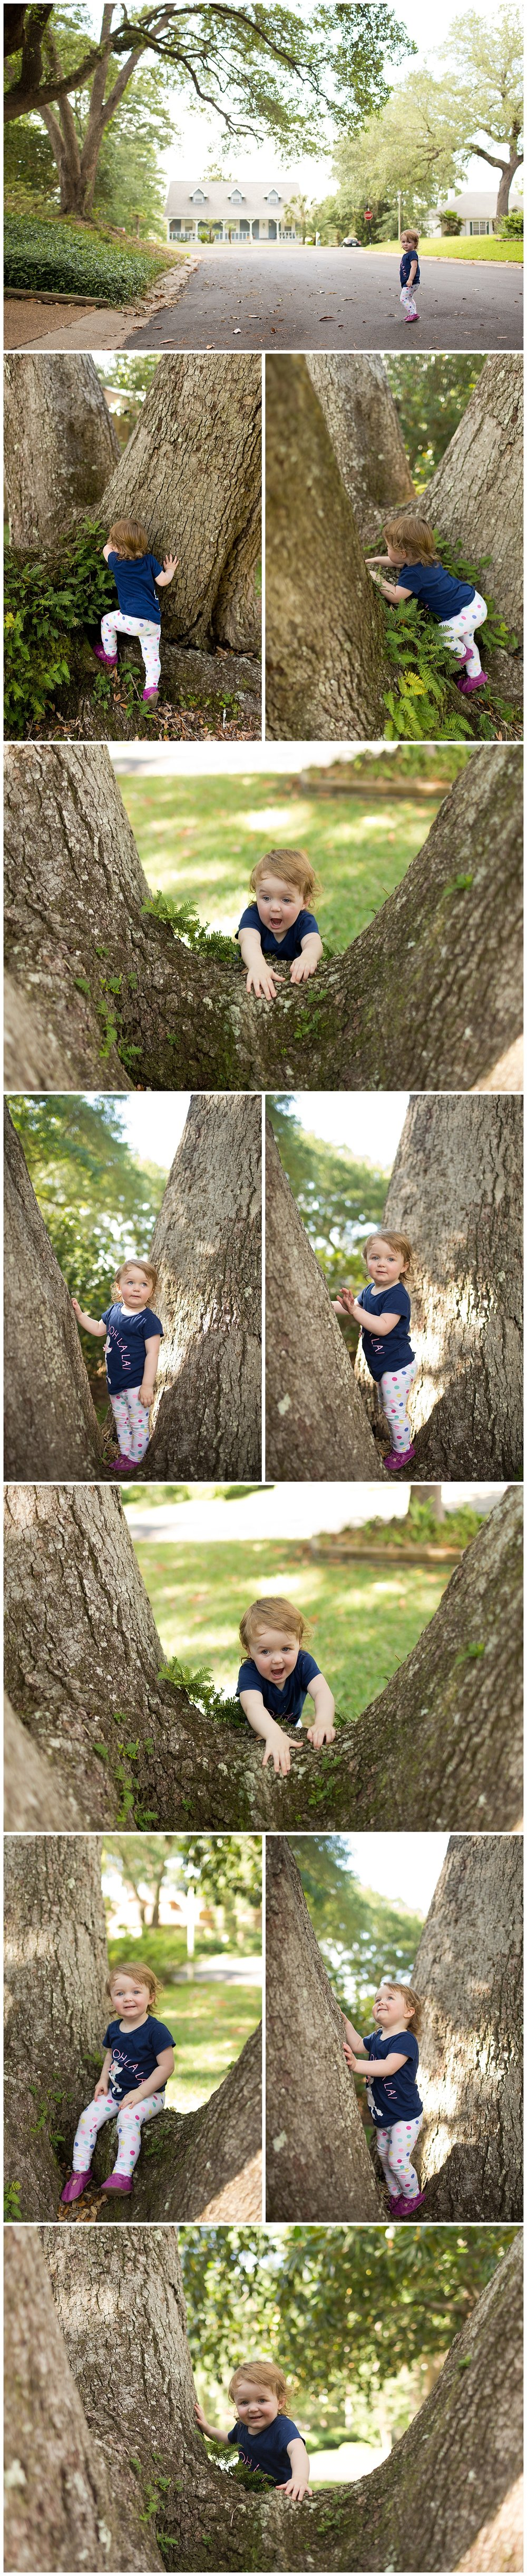 toddler girl climbing tree in Ocean Springs, Mississippi